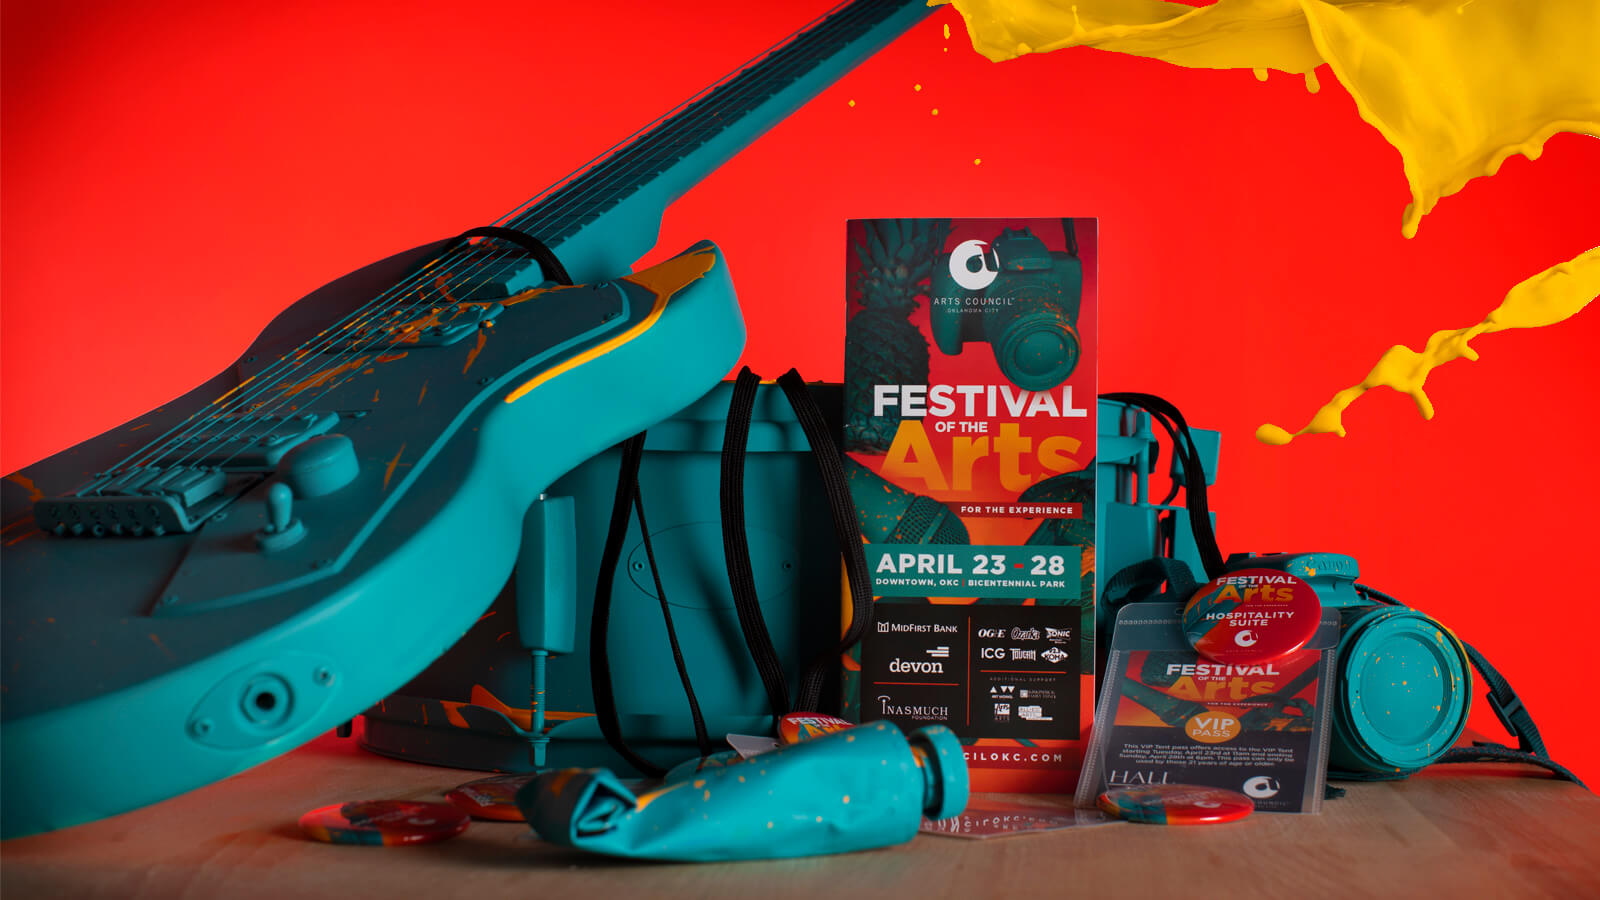 Brand for Arts Council Oklahoma City's Festival of the Arts 2019